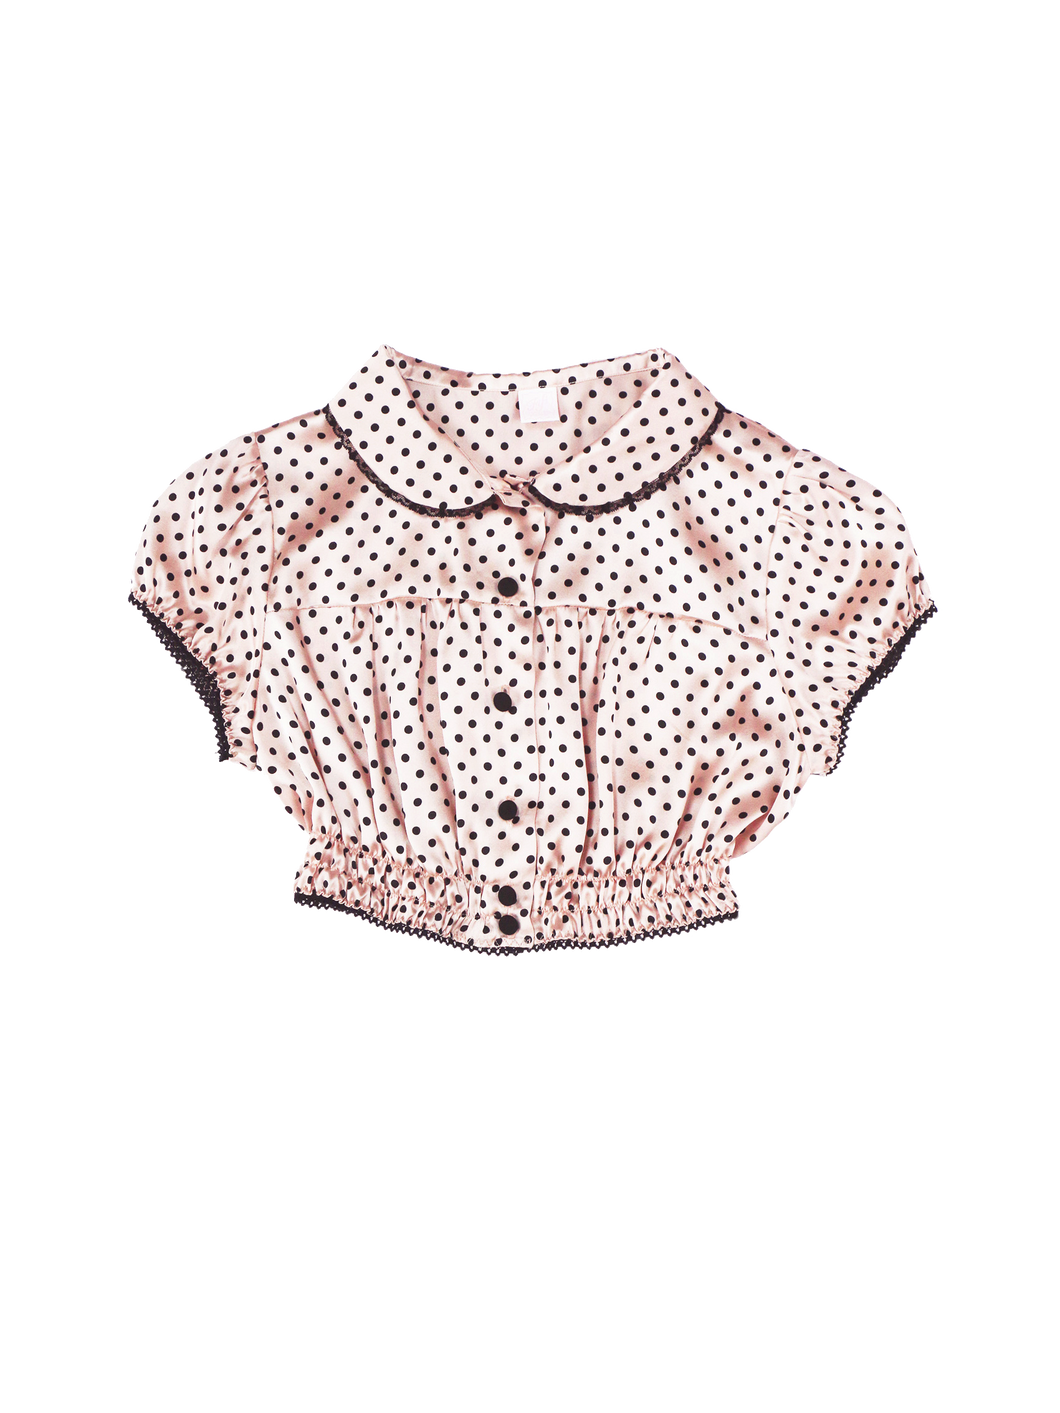 Fifi Chachnil dot tops (pink) - Poupee Boutique